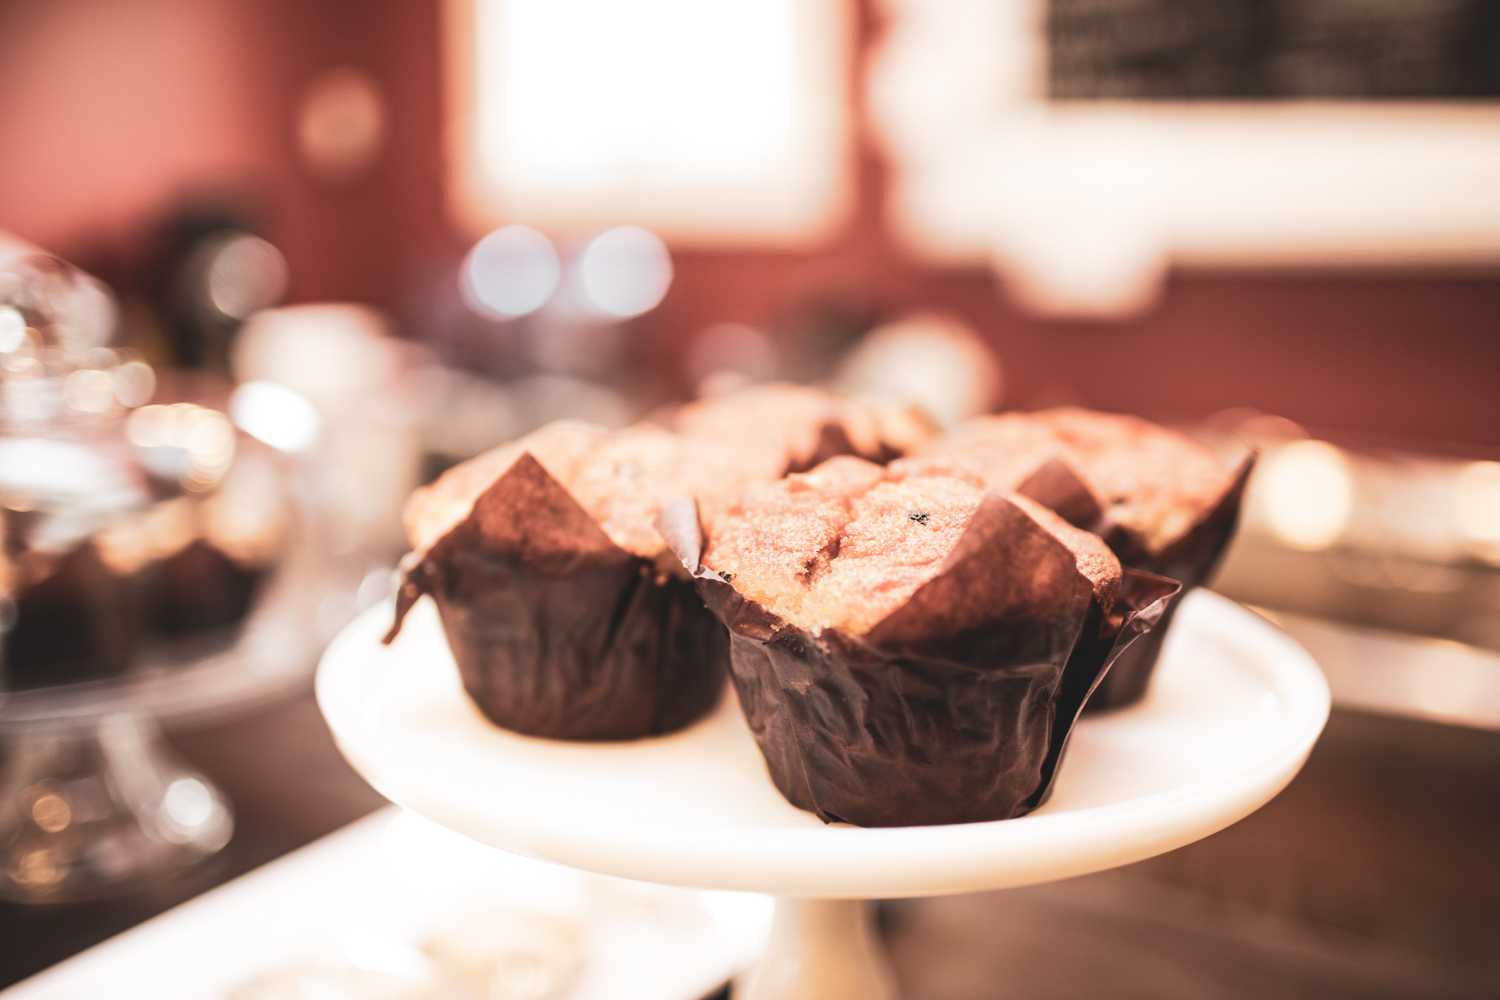 Muffins at Independent Grounds Cafe.